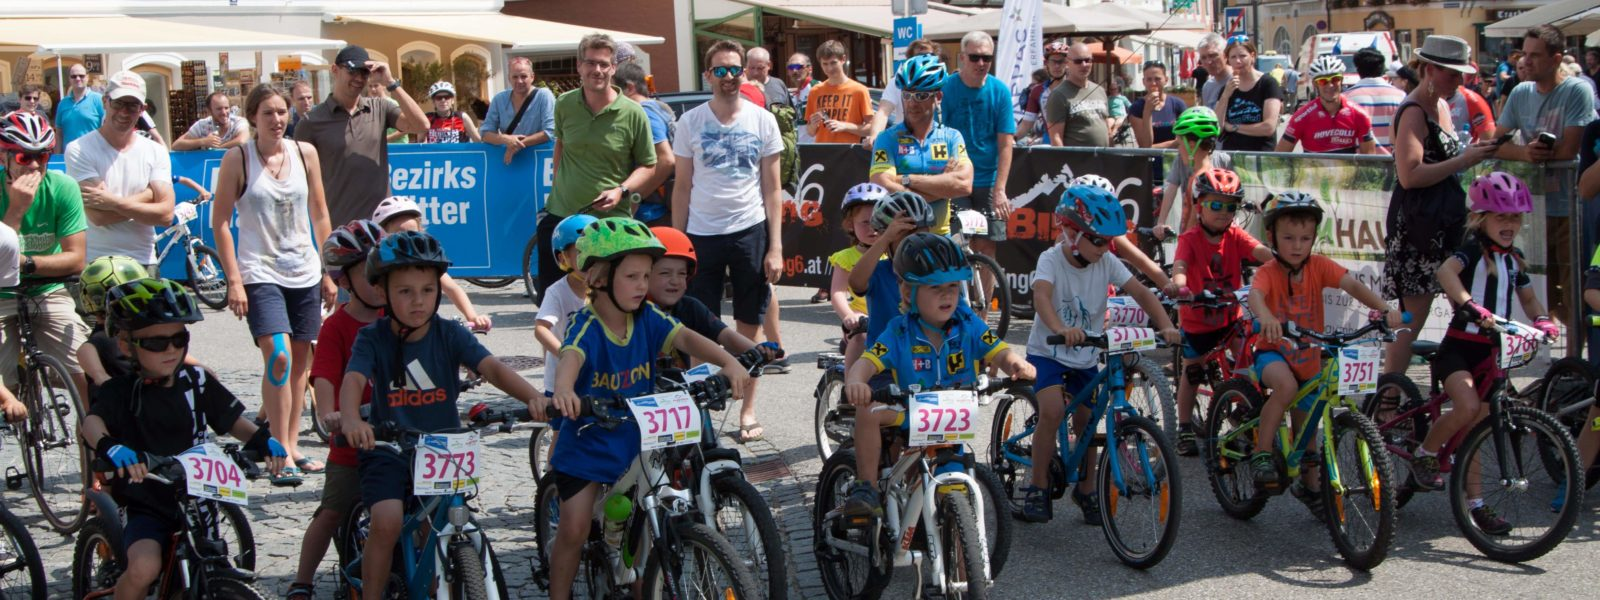 Start Kids-Race ©Christian Schober